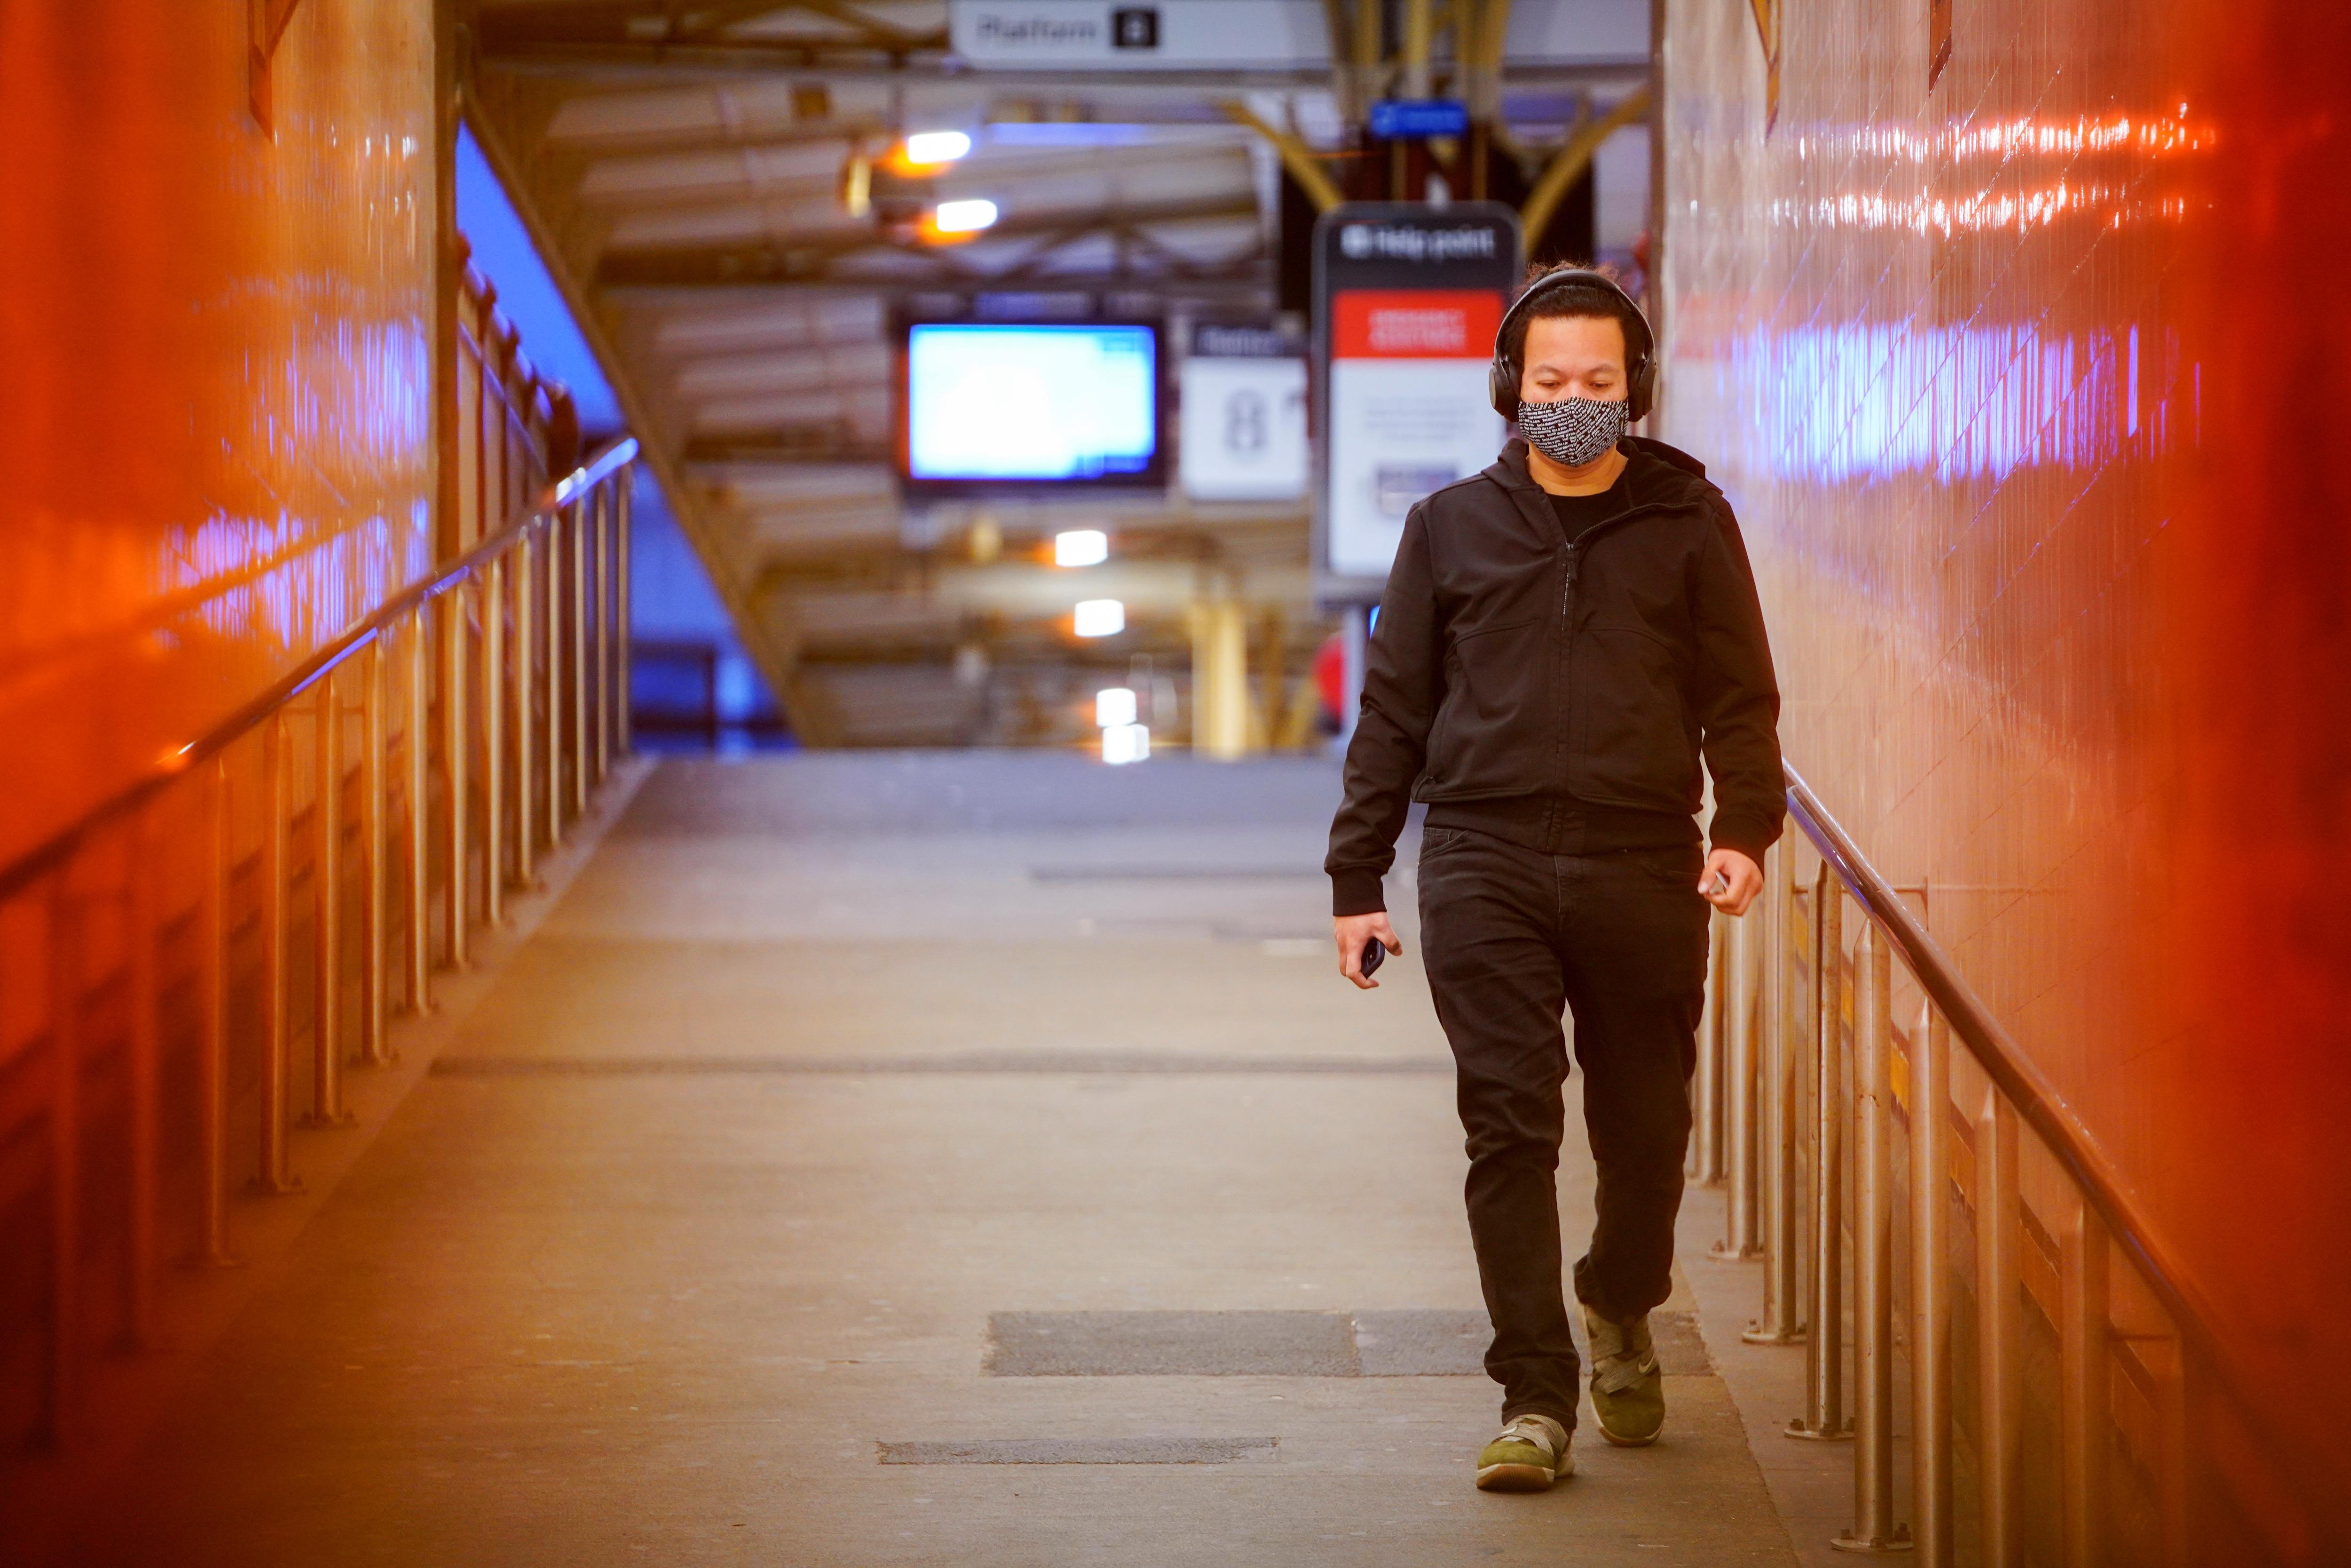 A lone passenger wearing a protective face mask walks from a deserted train platform at Flinders Street during morning commute hours on the first day of a lockdown as the state of Victoria looks to curb the spread of a coronavirus disease (COVID-19) outbreak in Melbourne, Australia, July 16, 2021. REUTERS/Sandra Sanders